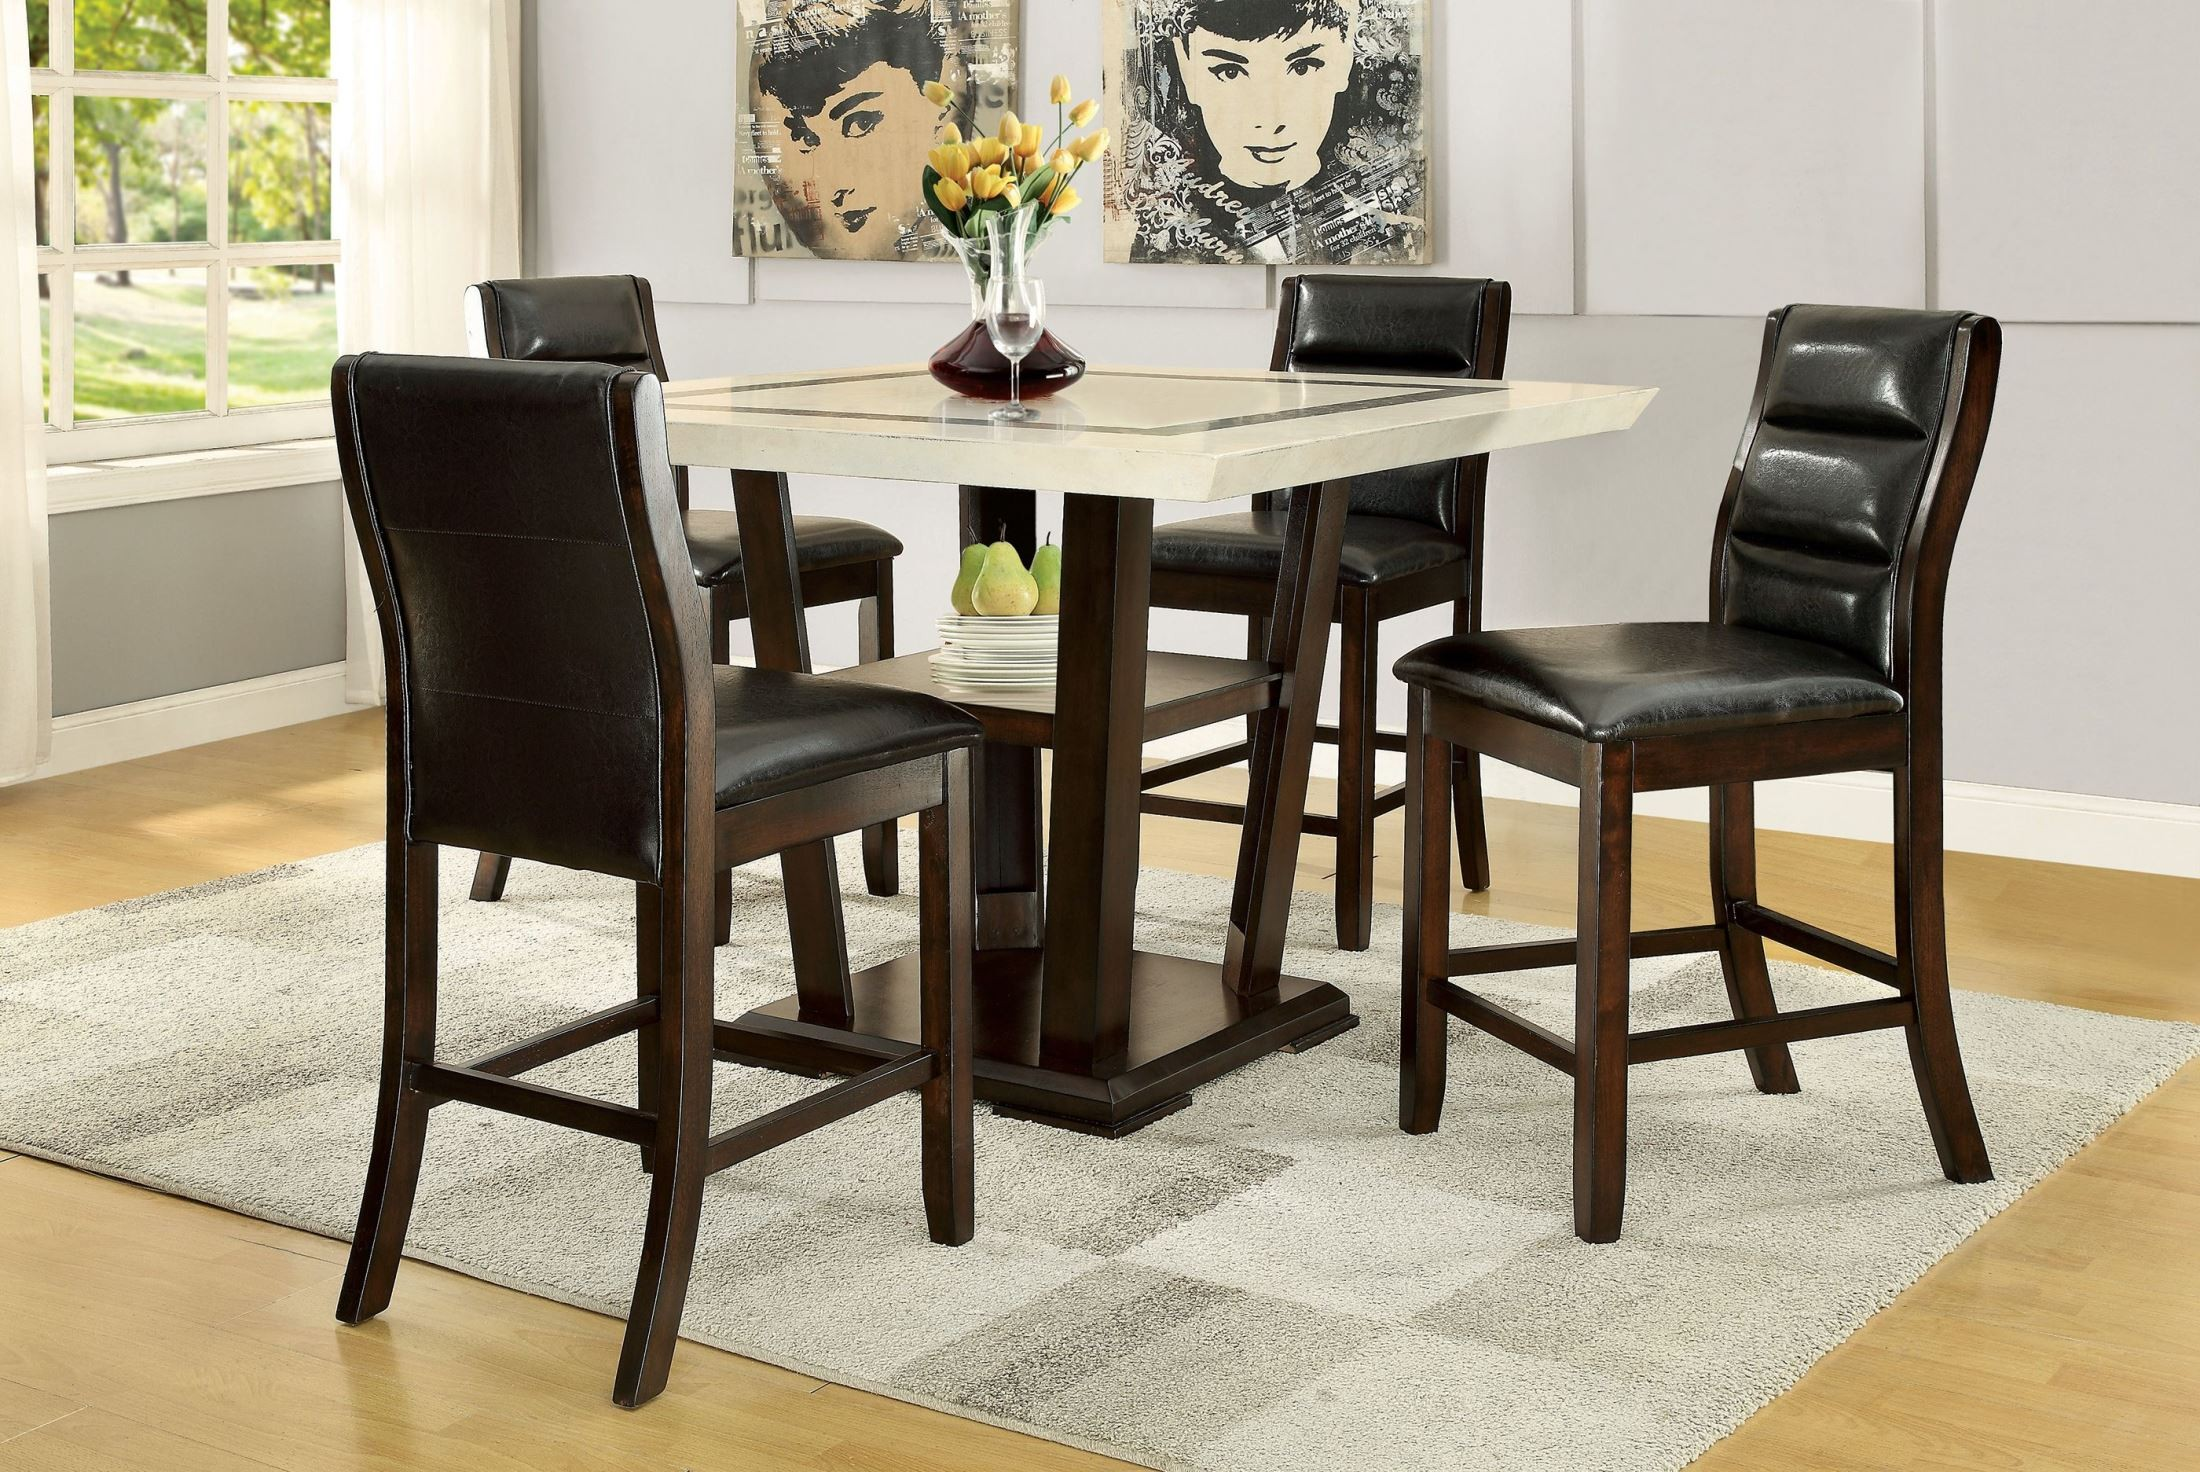 Lacombe Cappuccino Rectangular Counter Height Dining Room Set from ...